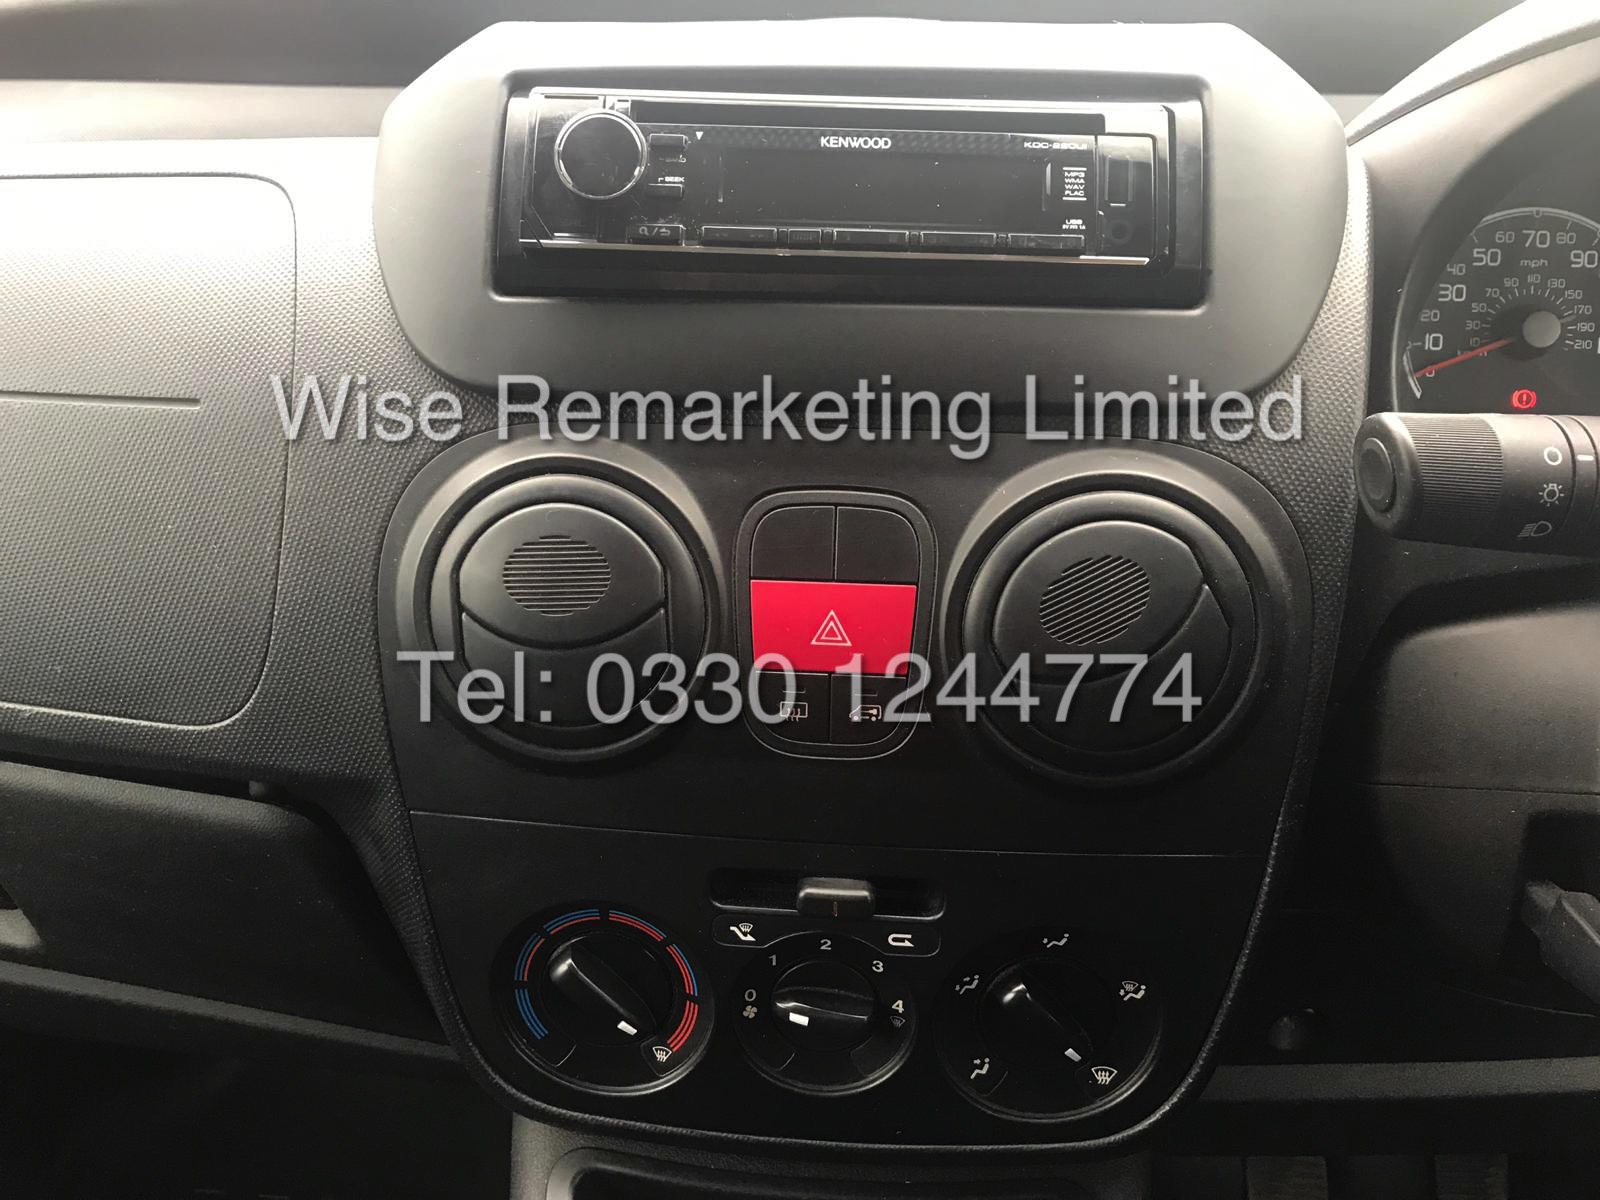 *** RESERVE MET*** CITROEN NEMO 1.3 HDI LX EDITION 2013 13 REG/ ULTRA LOW MILES.... NO VAT TO PAY - Image 7 of 13